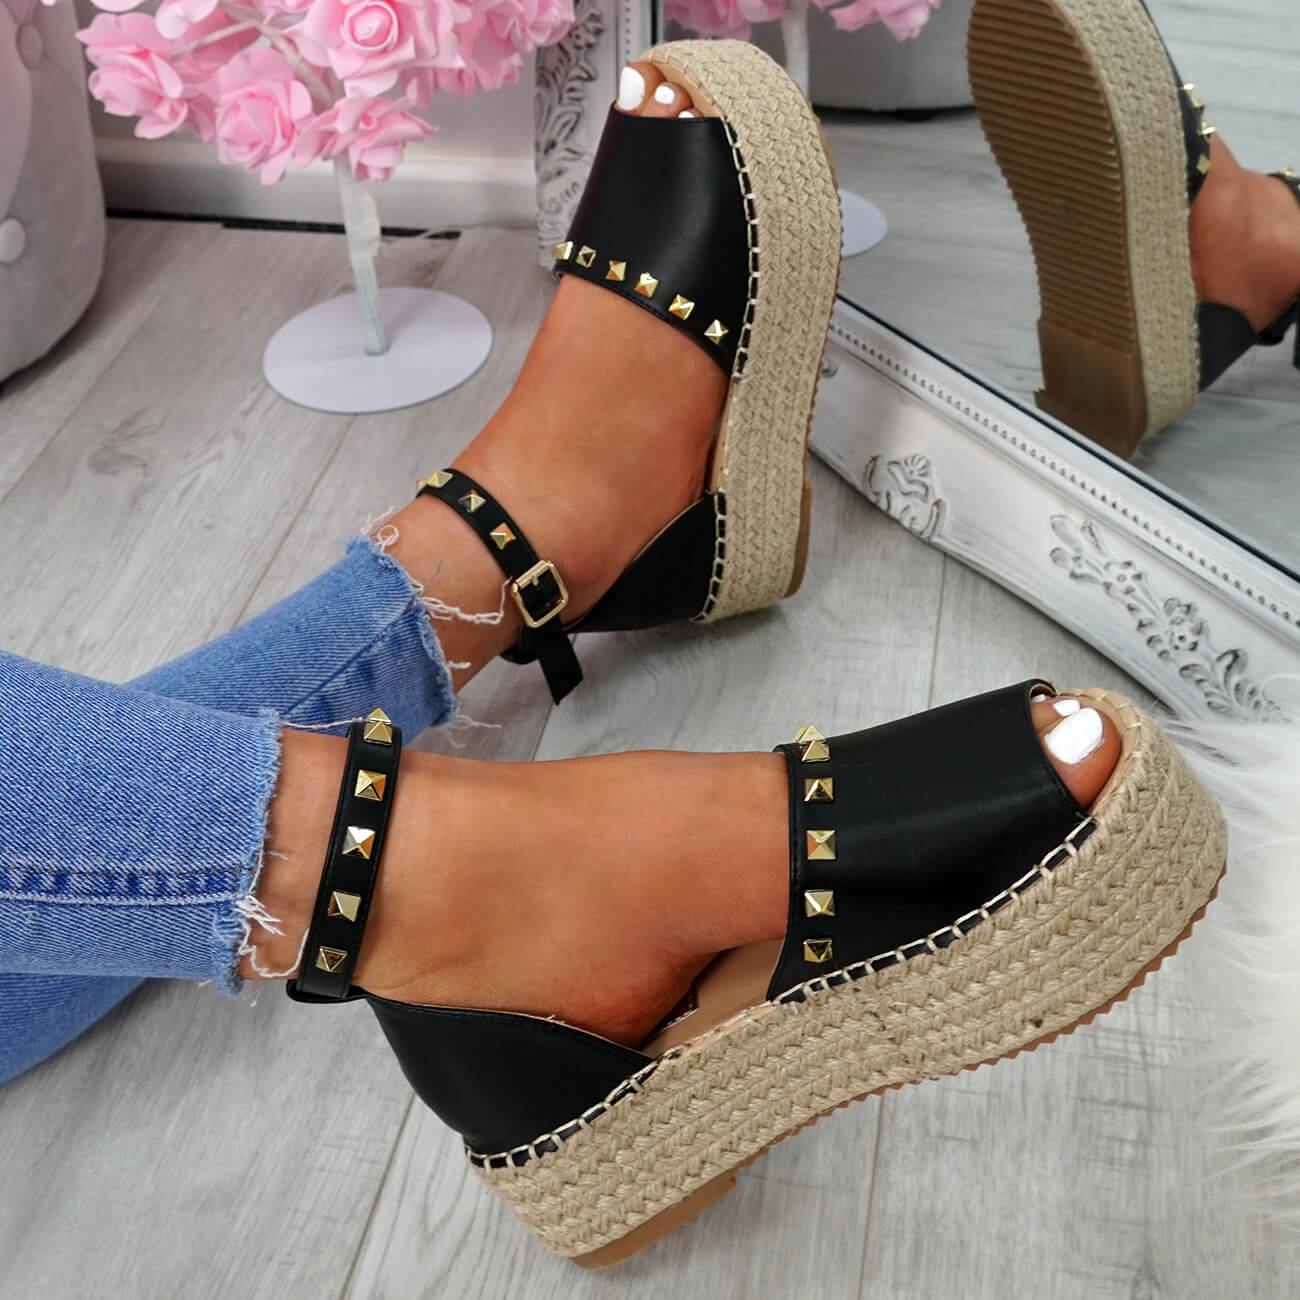 WOMENS-LADIES-ROCK-STUDS-ESPADRILLE-FLATFORM-PLATFORM-SANDALS-CASUAL-SHOES-SIZE thumbnail 10